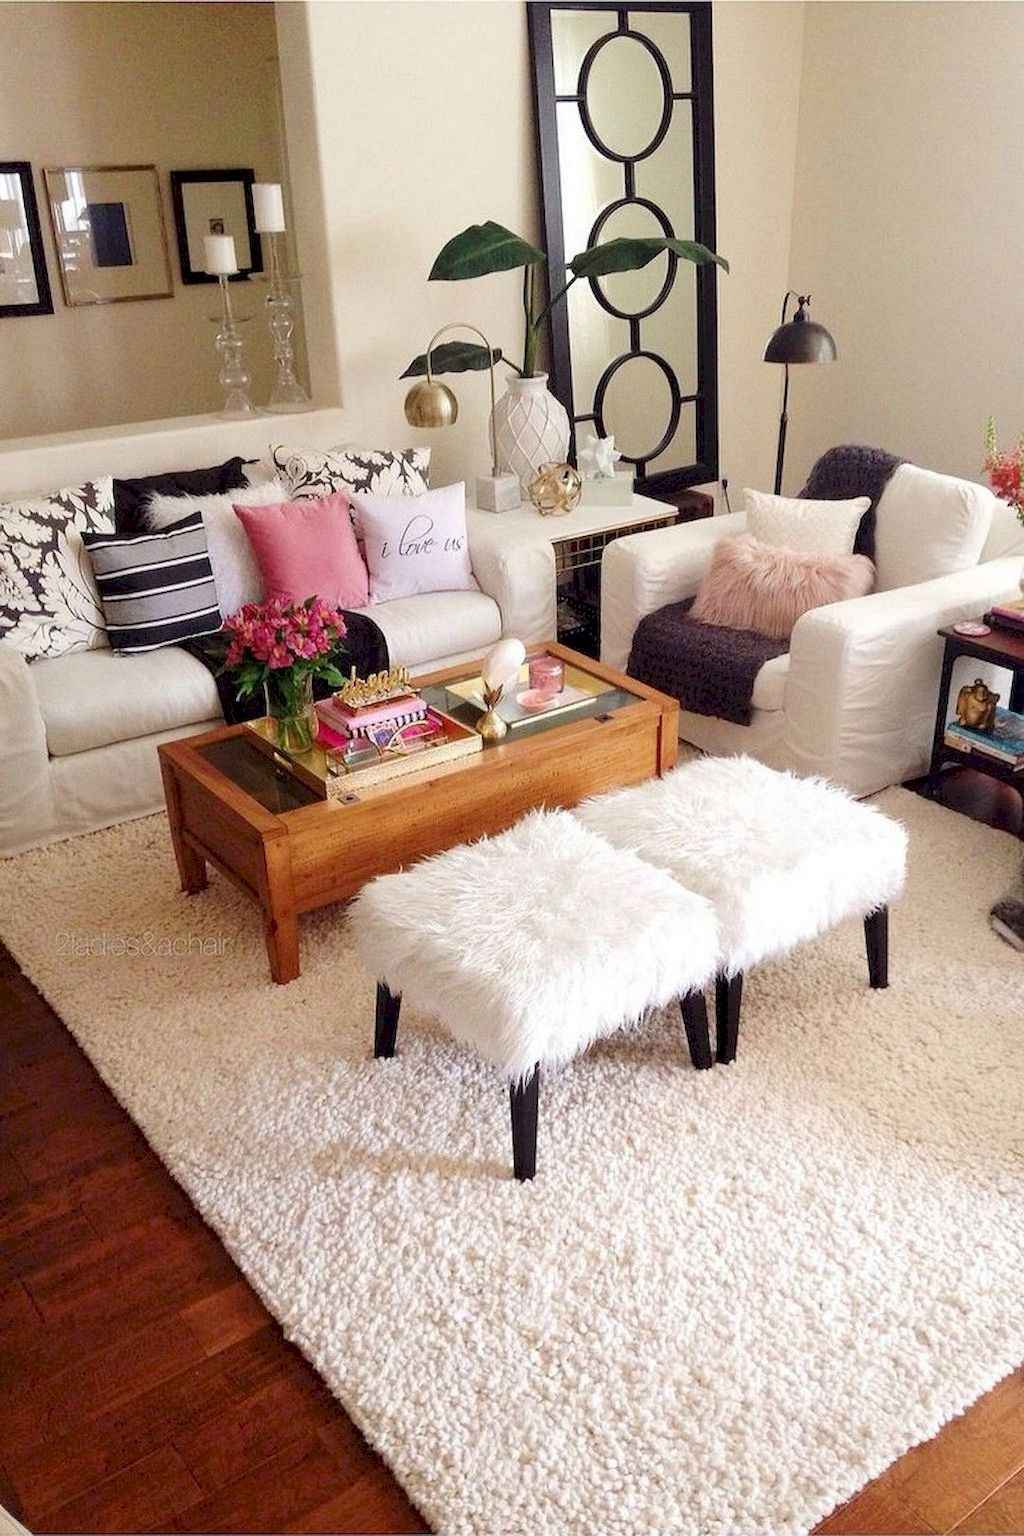 Clever college apartment decorating ideas on a budget (21)